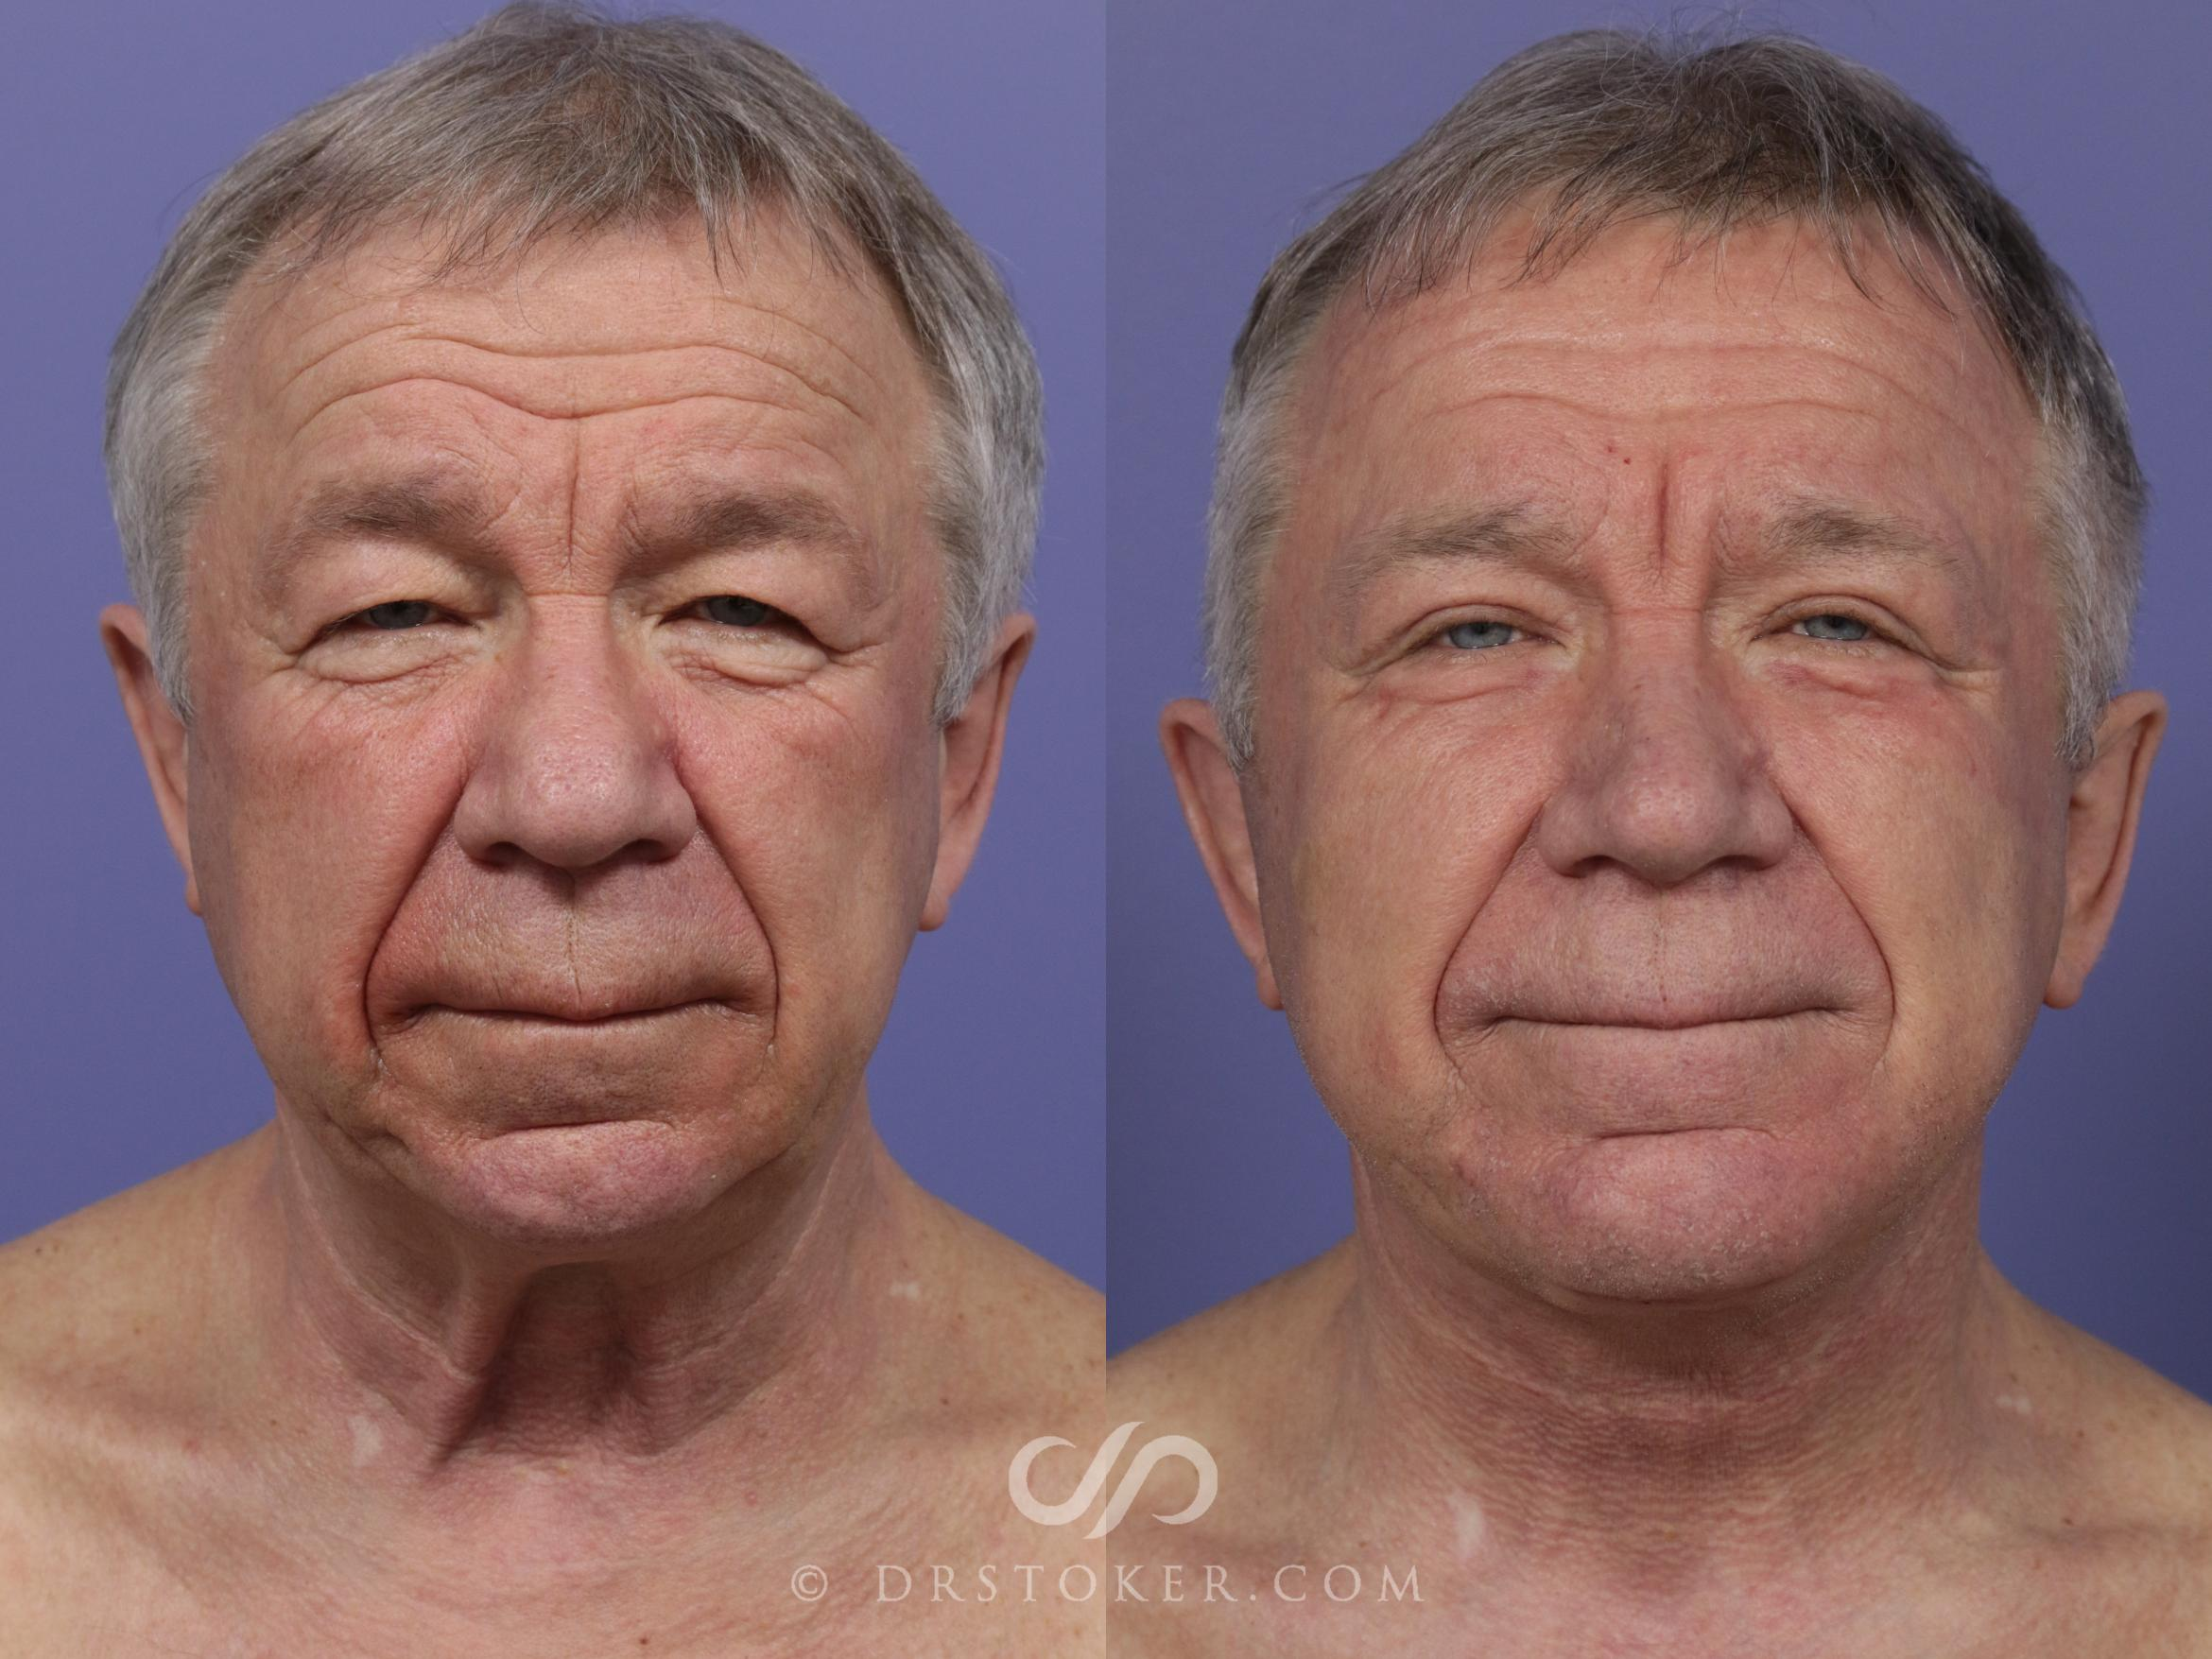 Facelift for Men Case 823 Before & After View #1 | Marina del Rey, CA | Dr. David Stoker